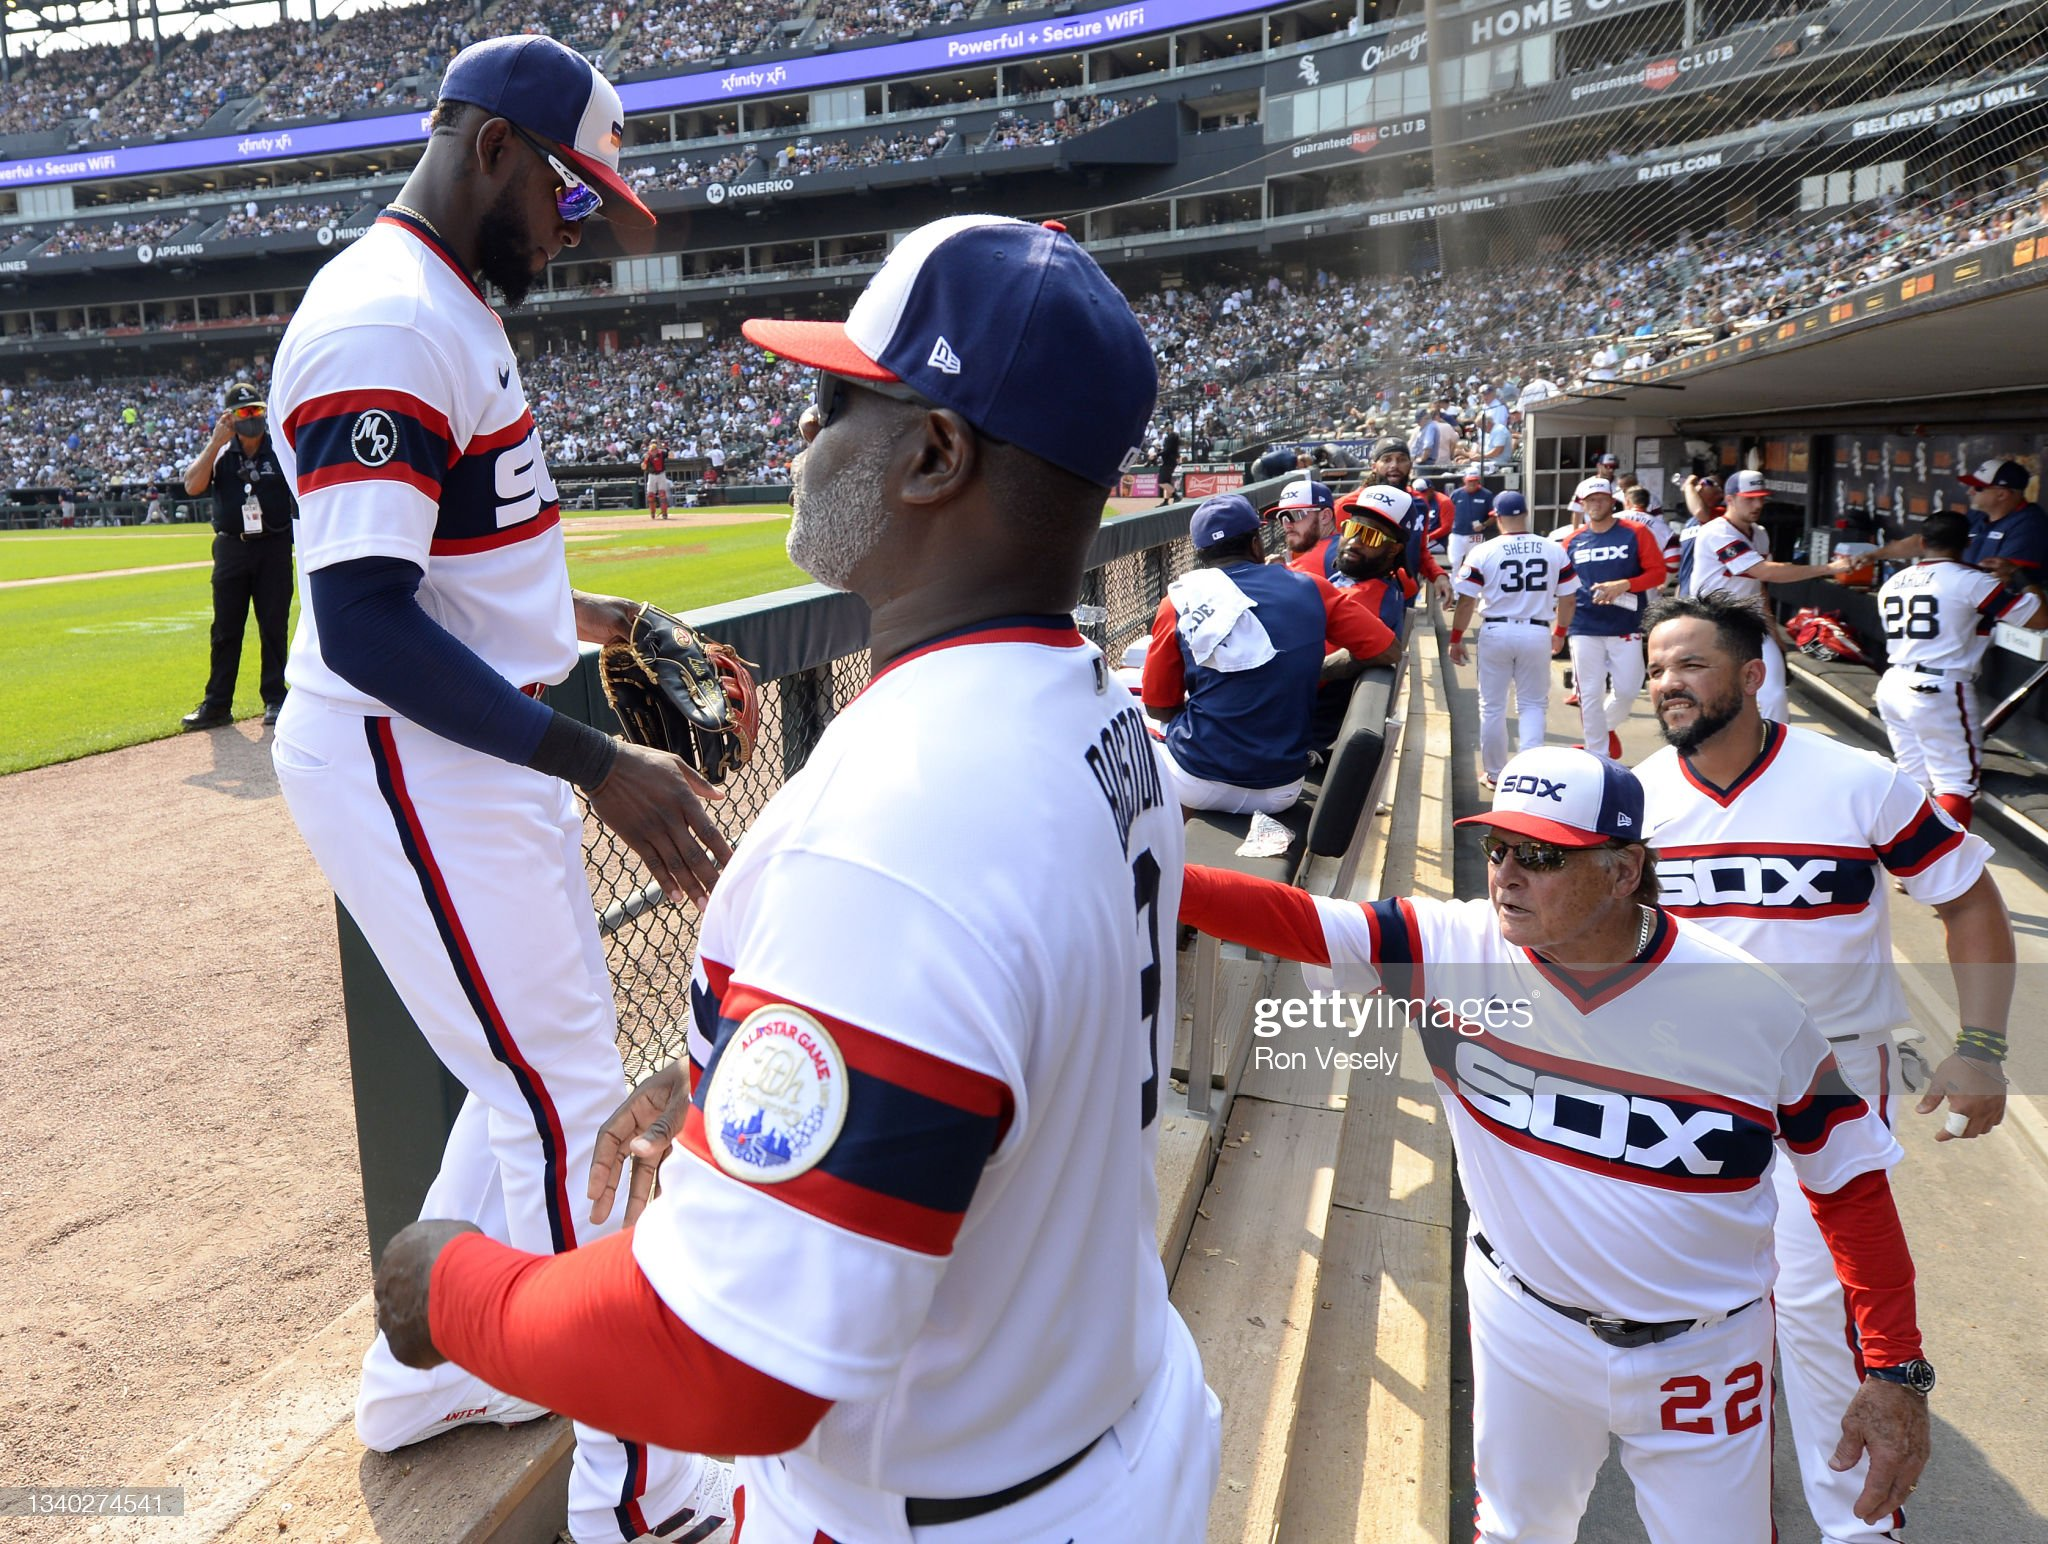 luis-robert-is-greeted-by-third-base-coa